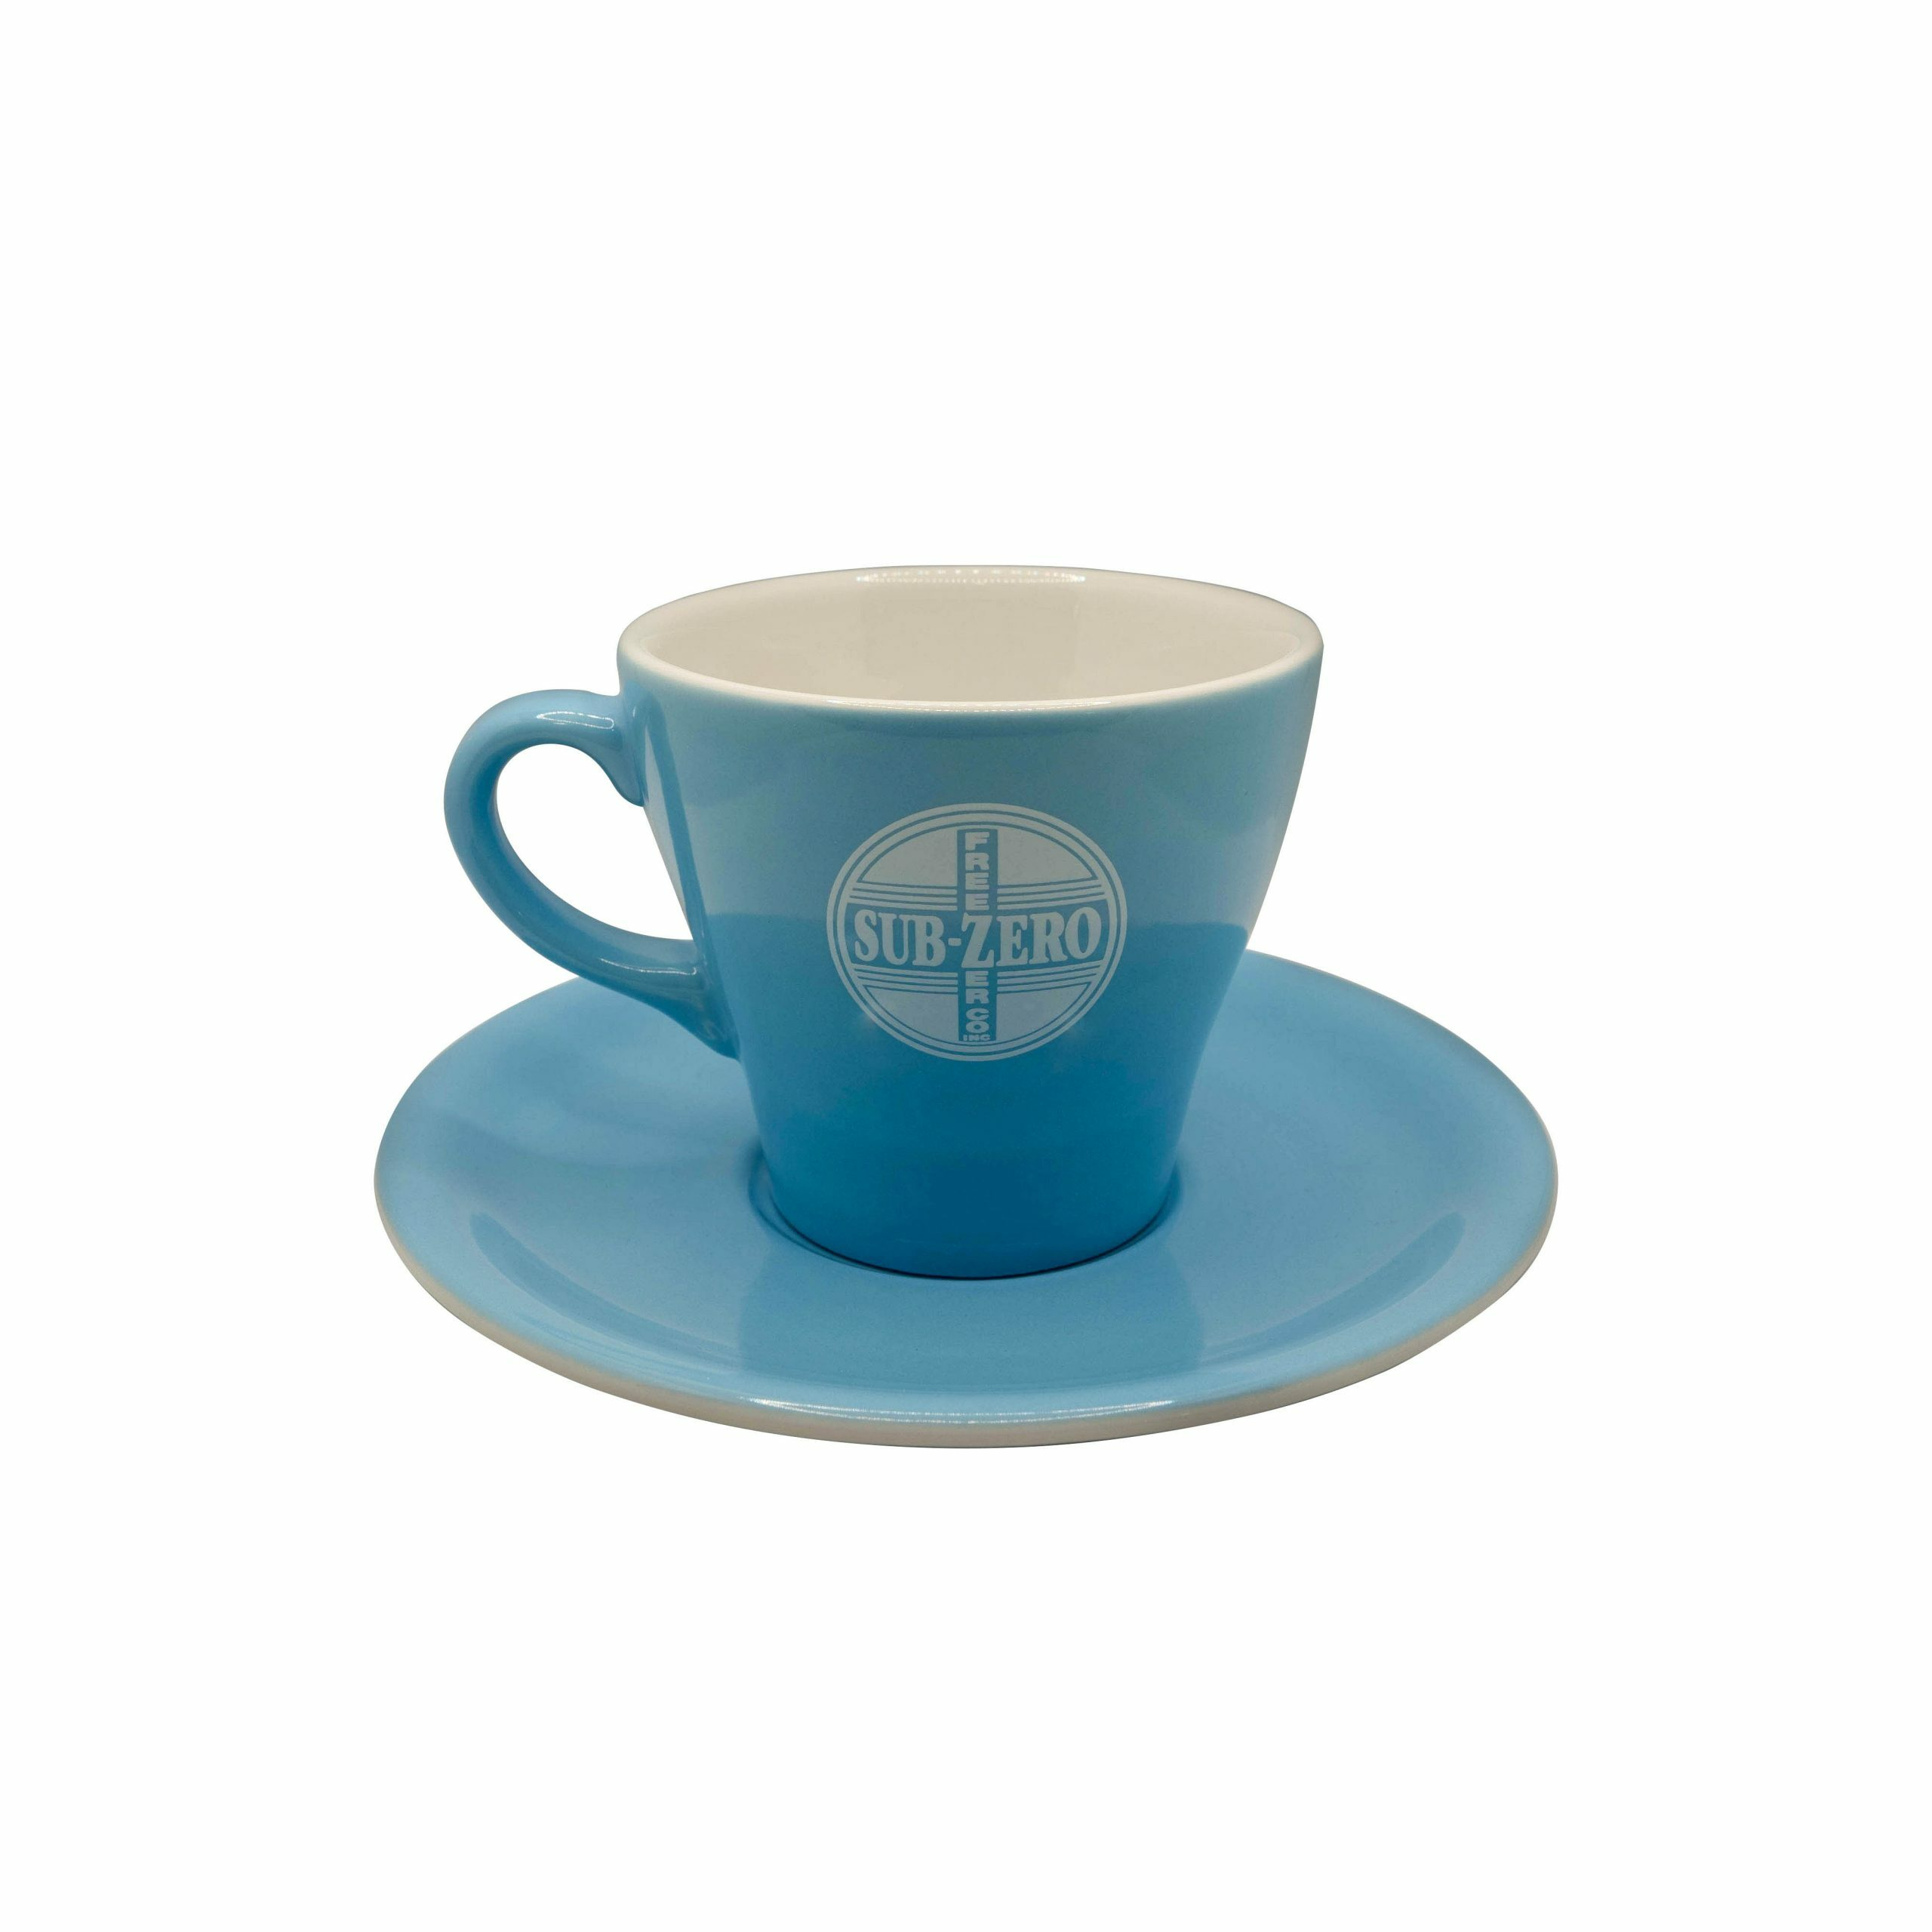 Sub Zero Late Cup & Saucer